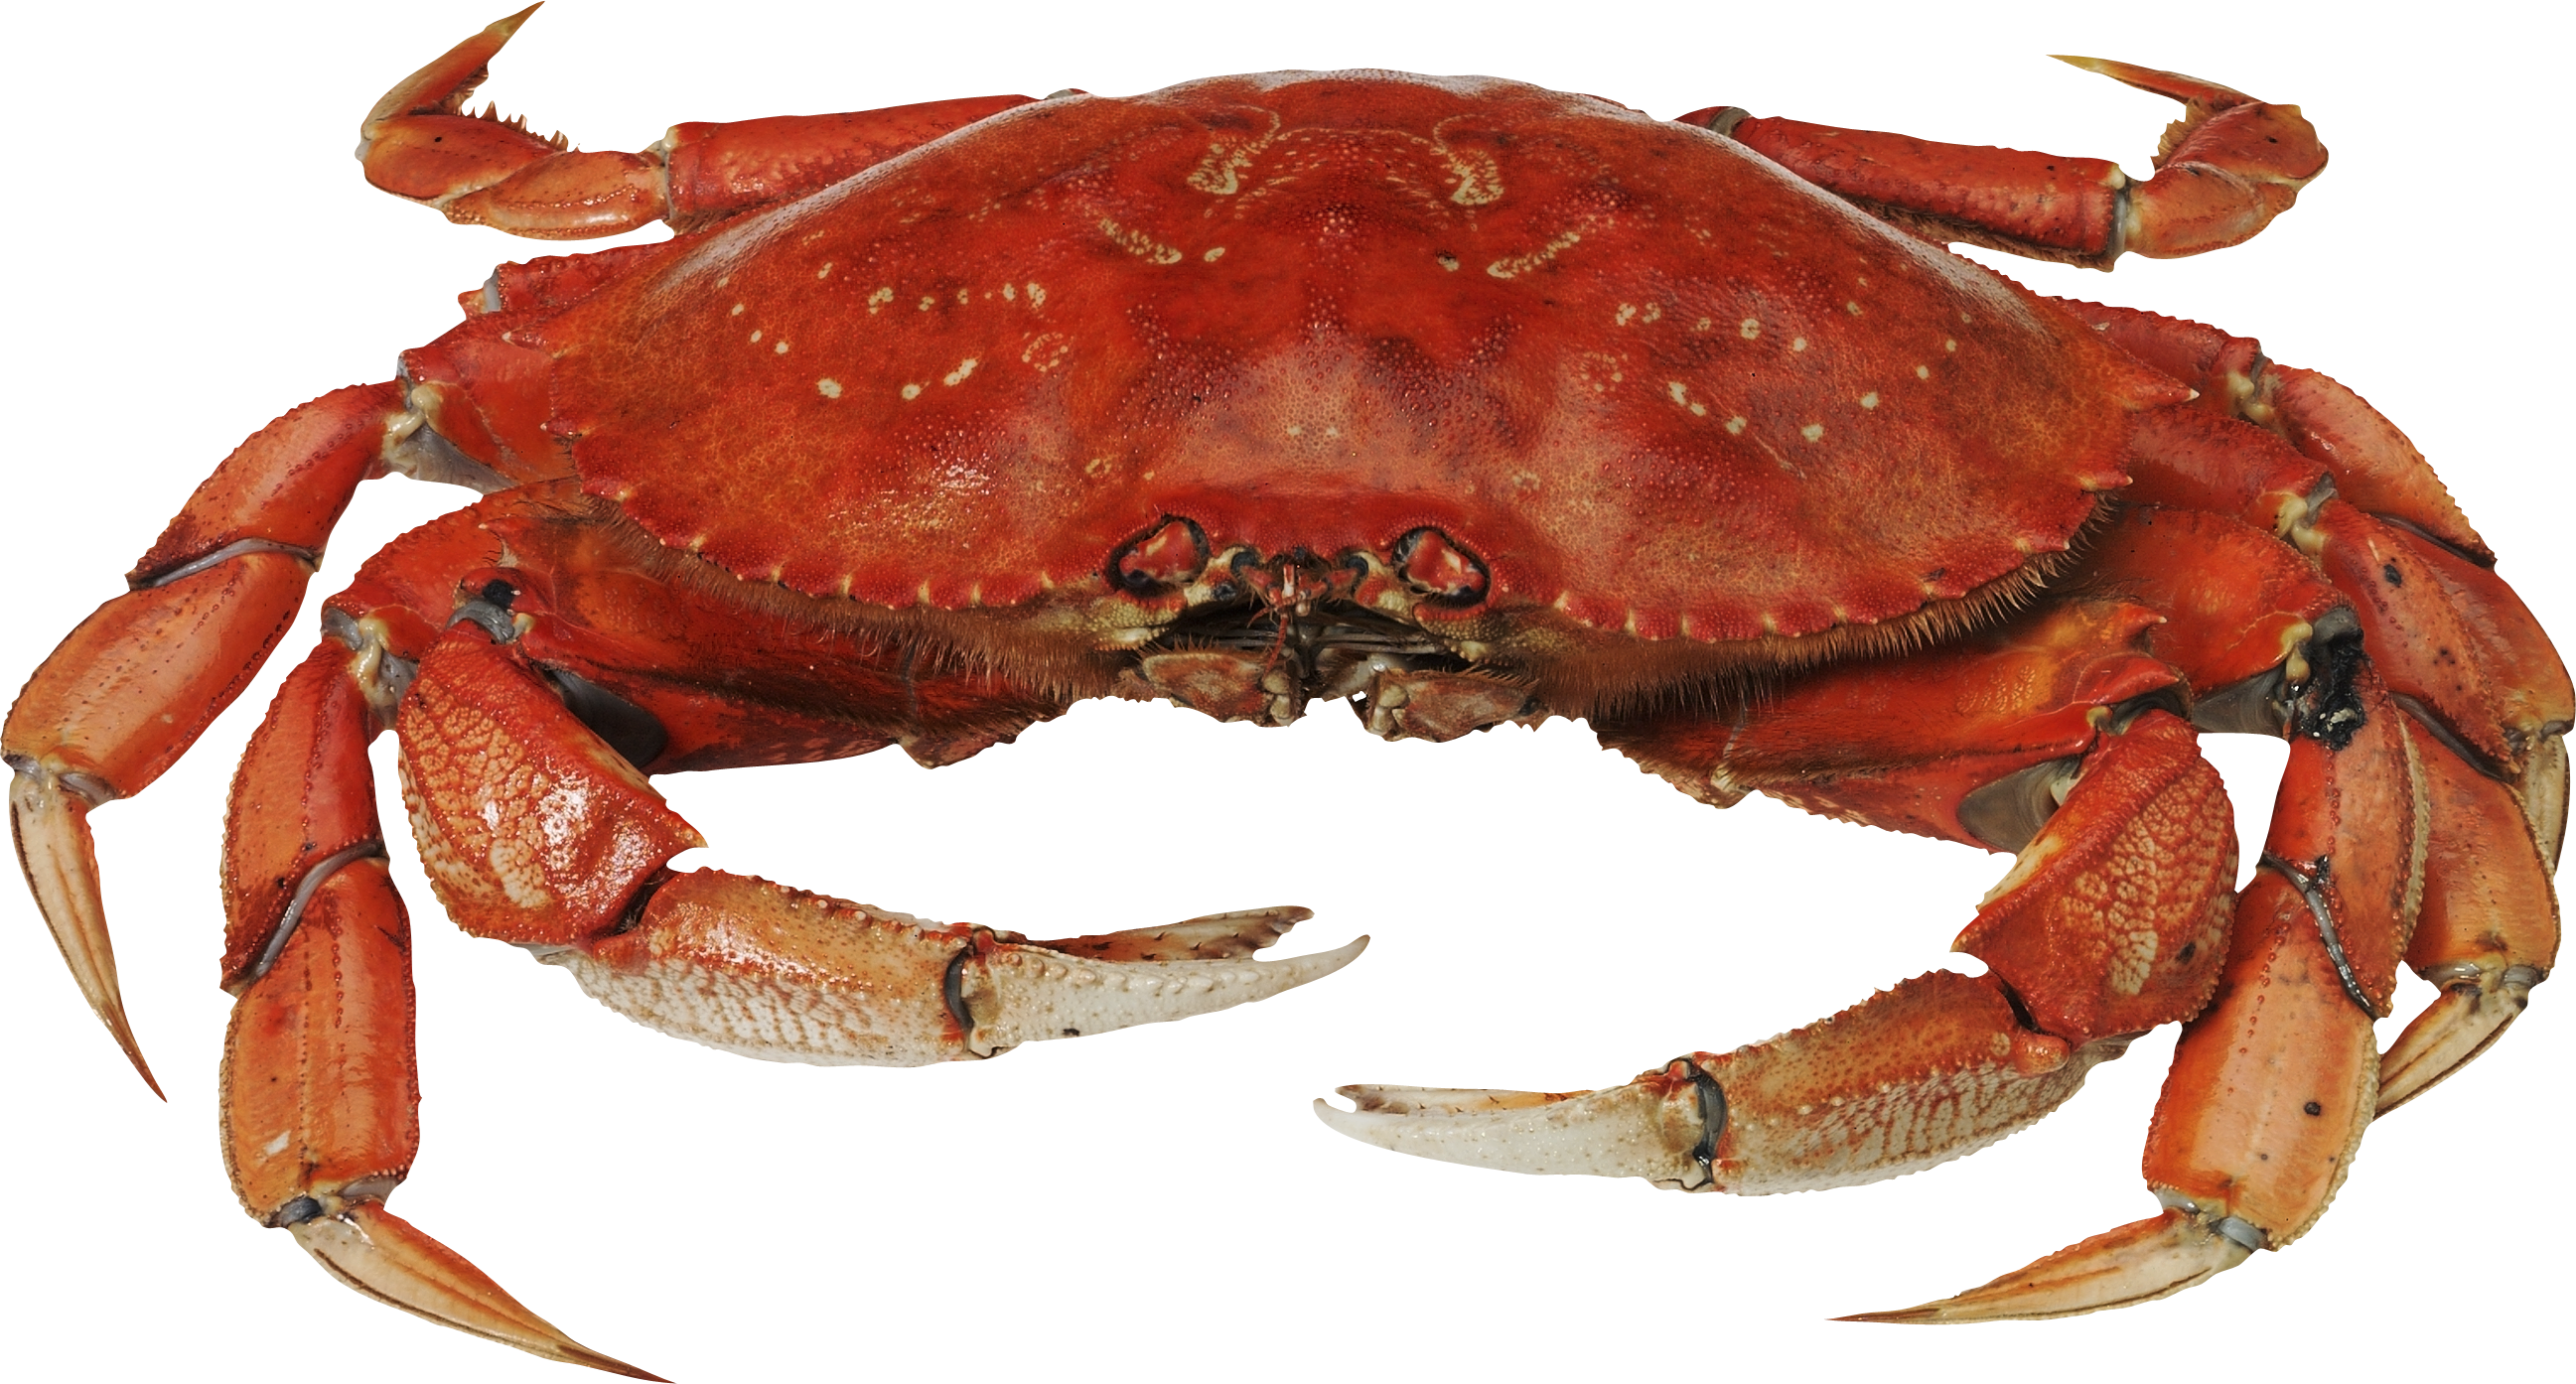 Crab claws png. Images free dowbload